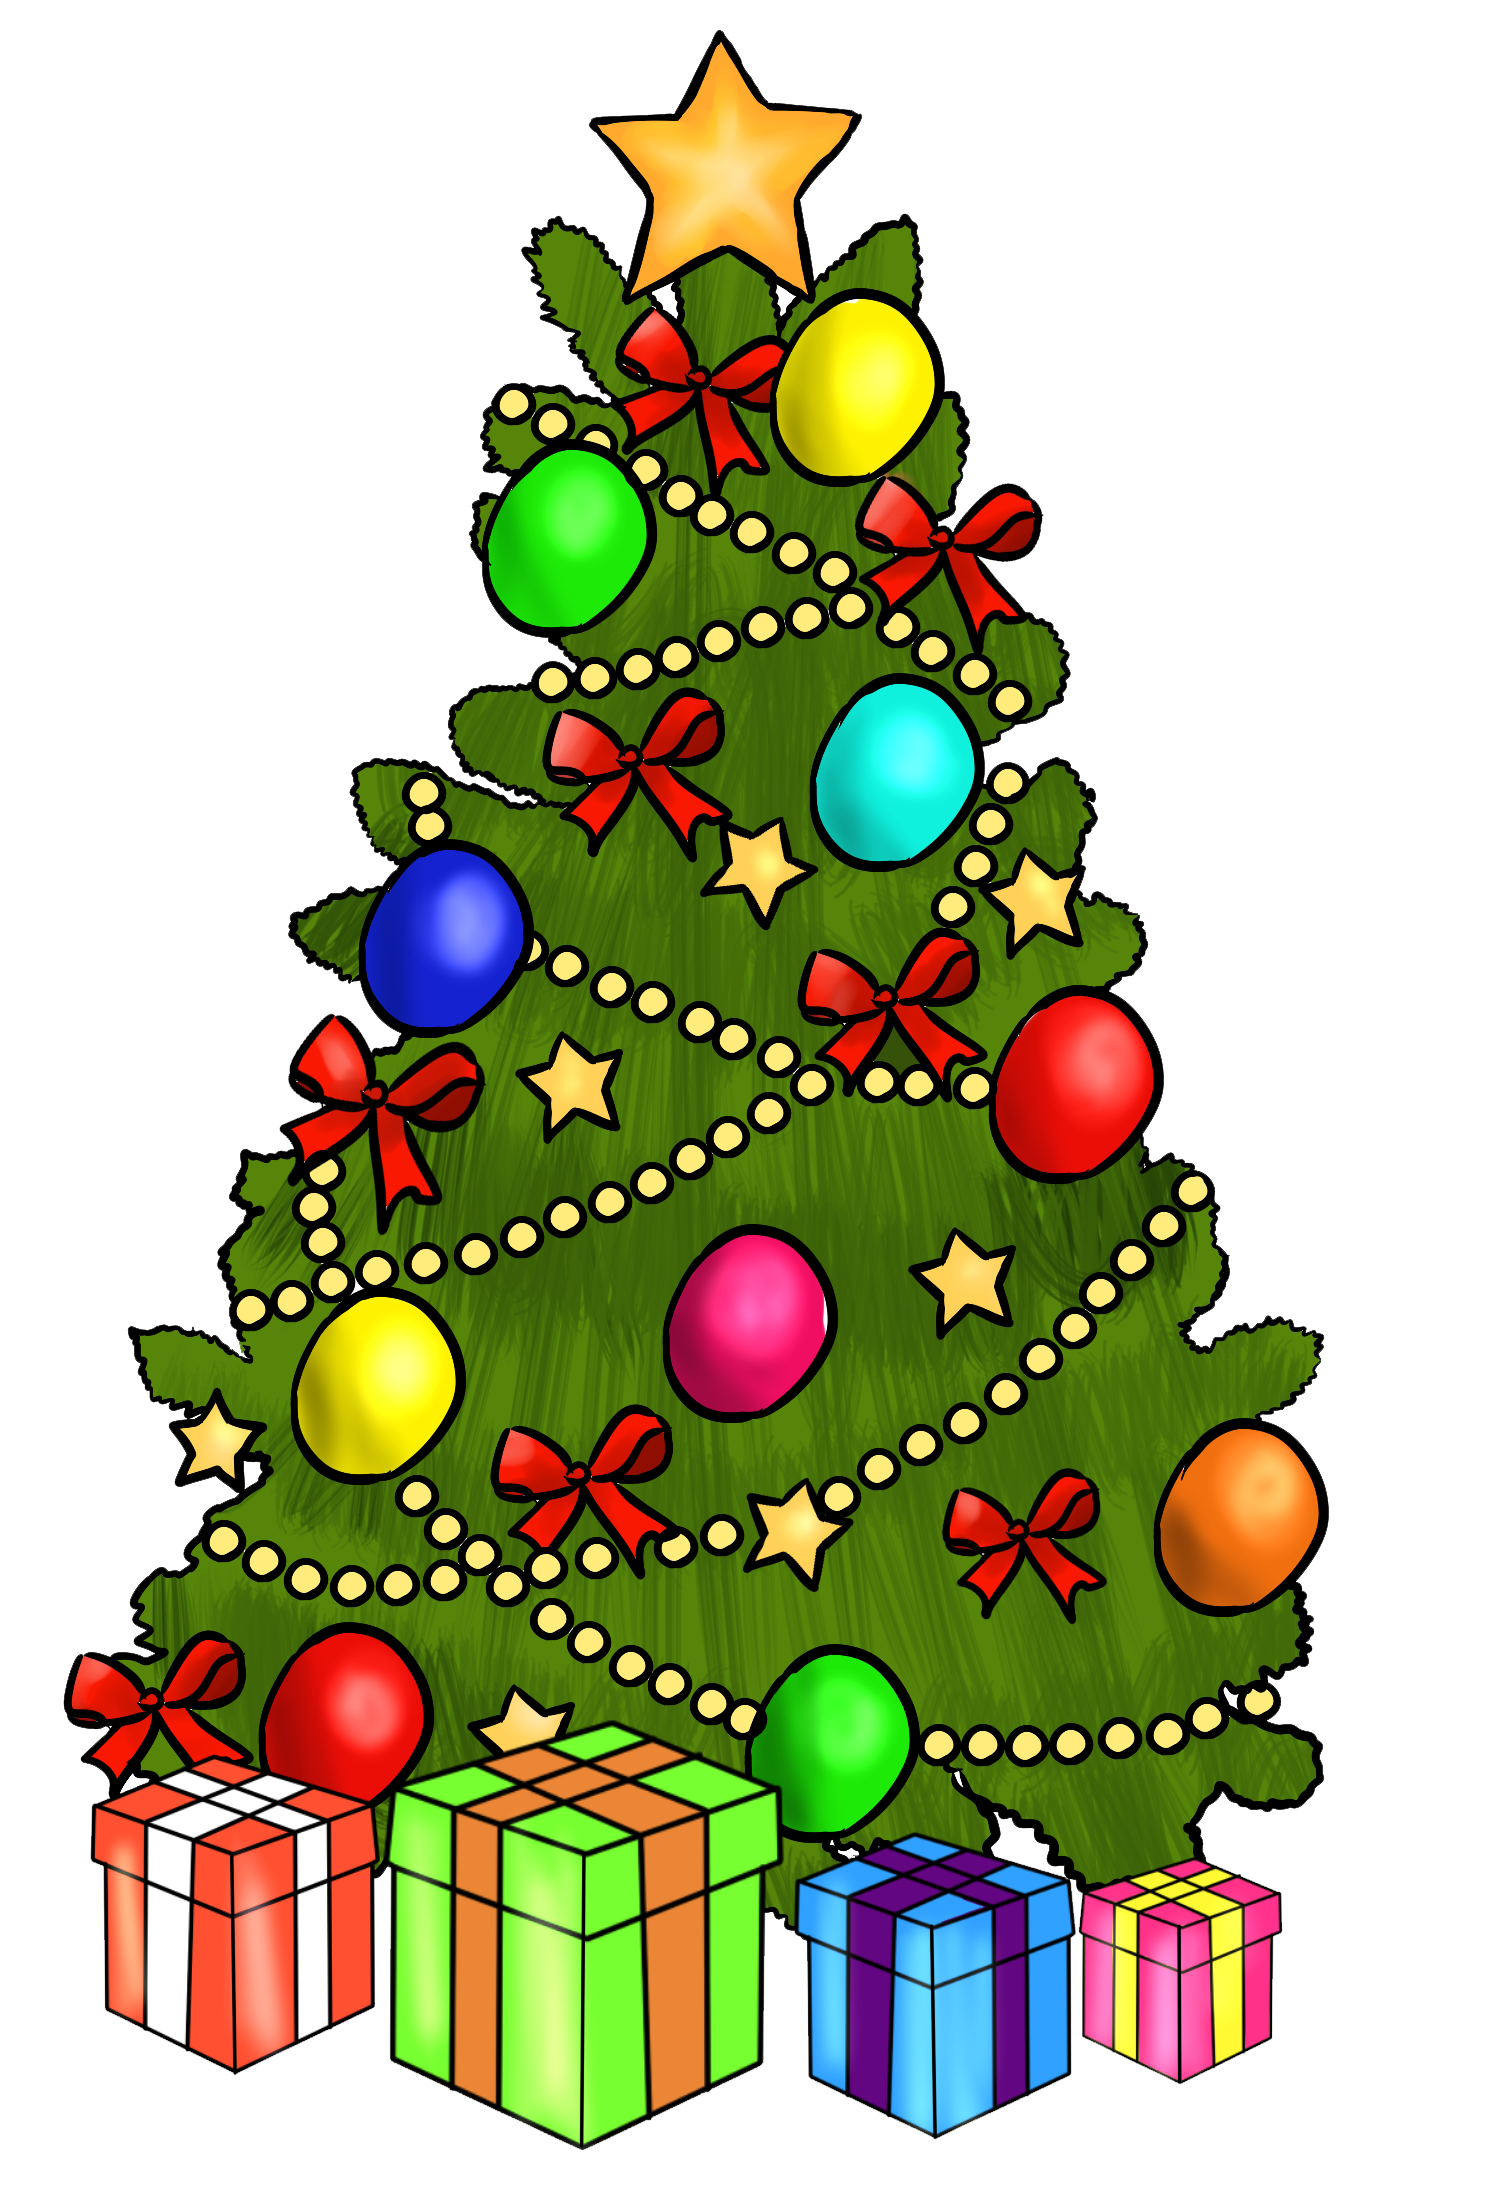 Christmas tree family clipart graphic transparent download This cute Christmas wreath clip art is perfect for use on your ... graphic transparent download